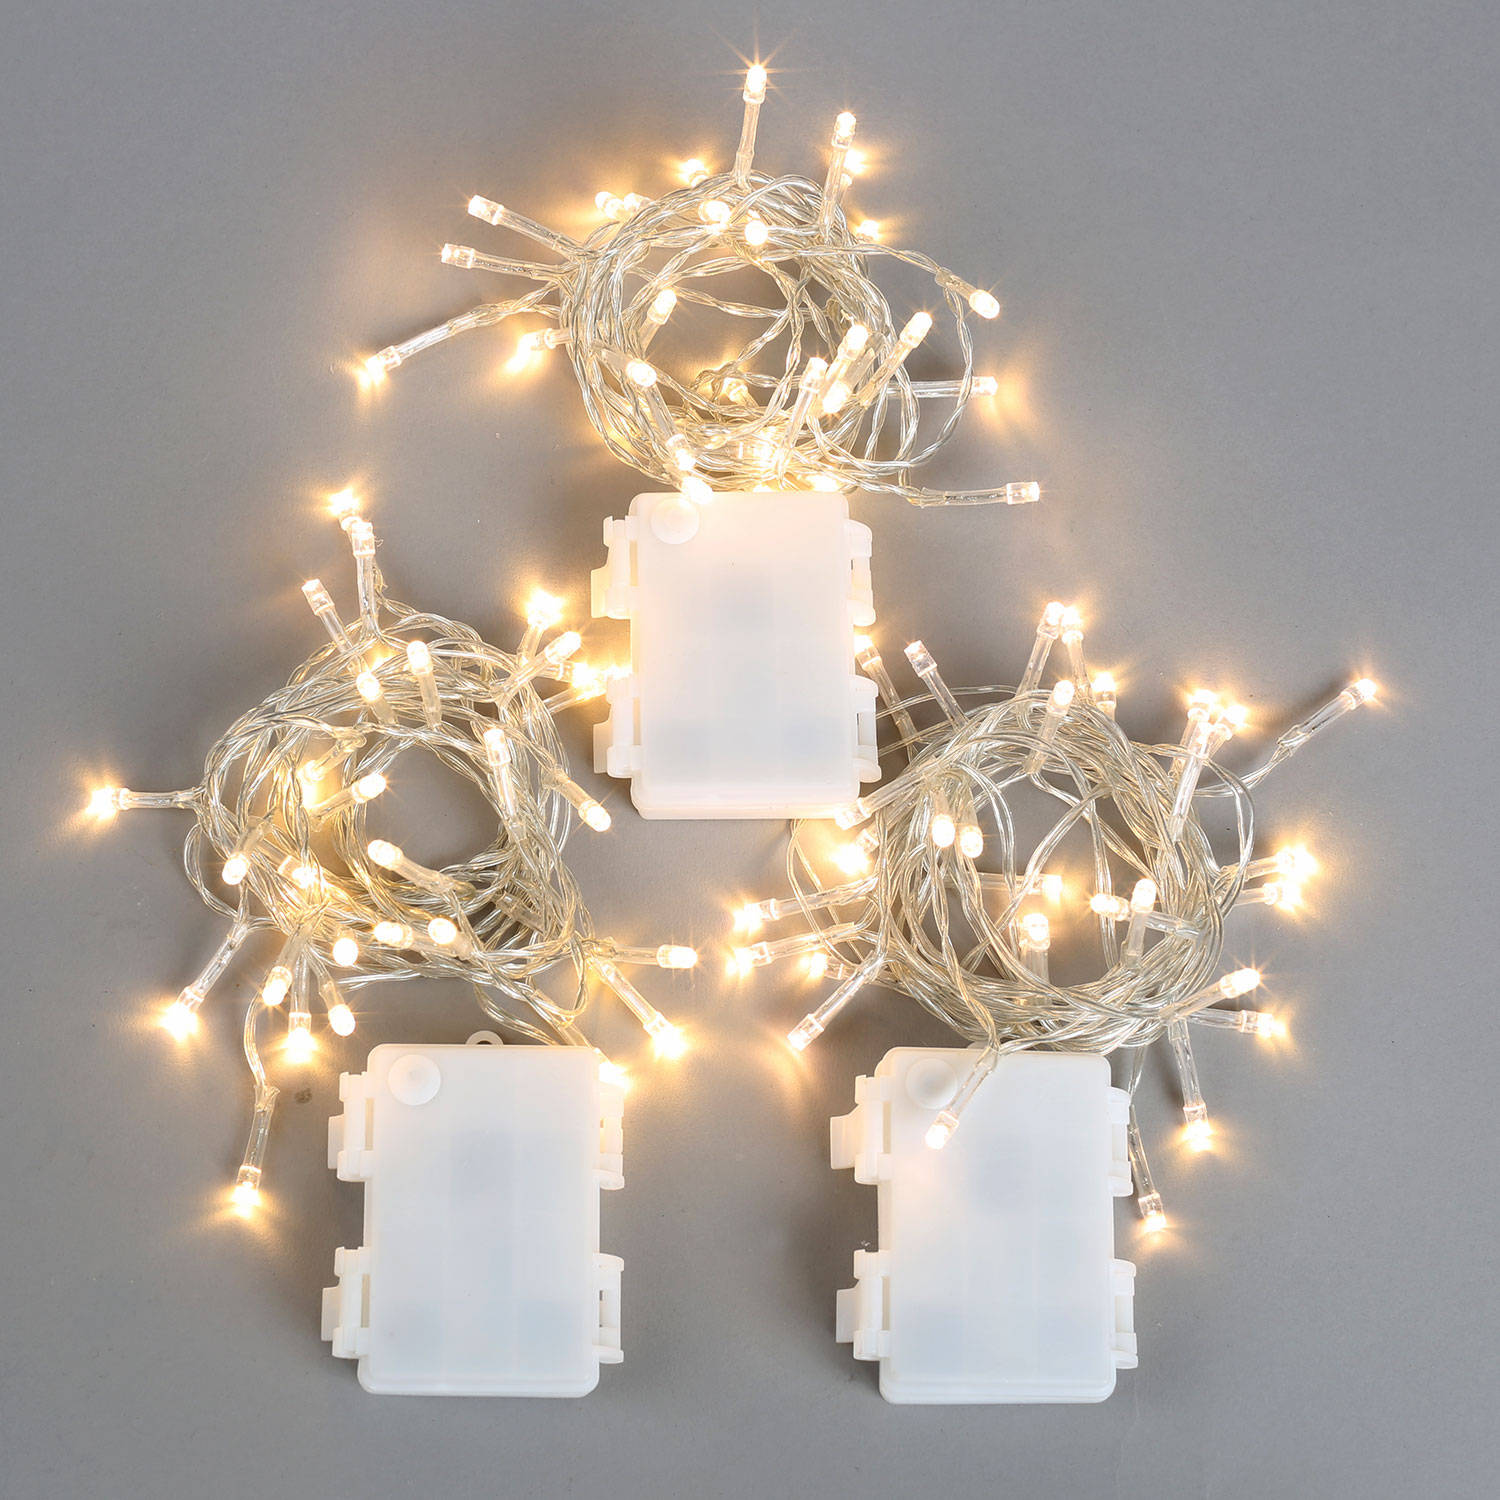 Led String Lights With Battery : Lights.com String Lights Battery String Lights Warm-White LED Battery-Powered String ...